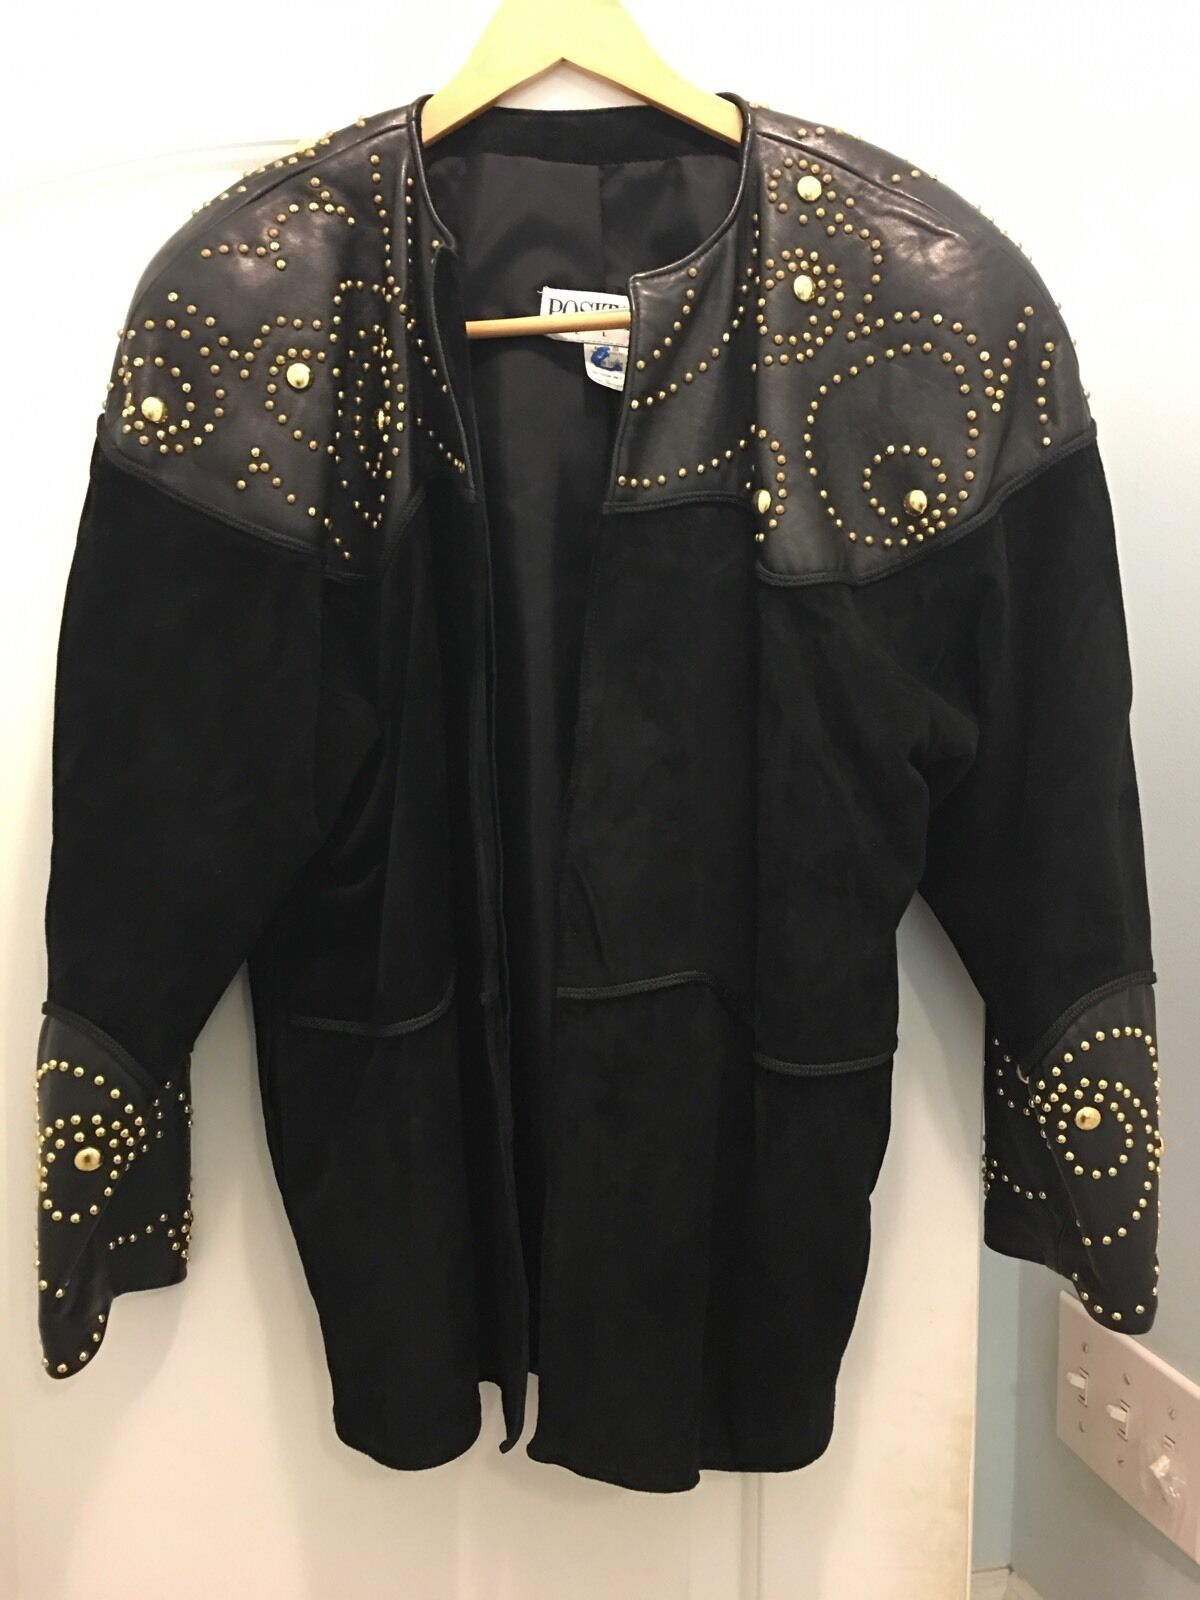 Positano Pelle Women's Studded Draped Leather Coat No Size Tag Suede Padded Shld